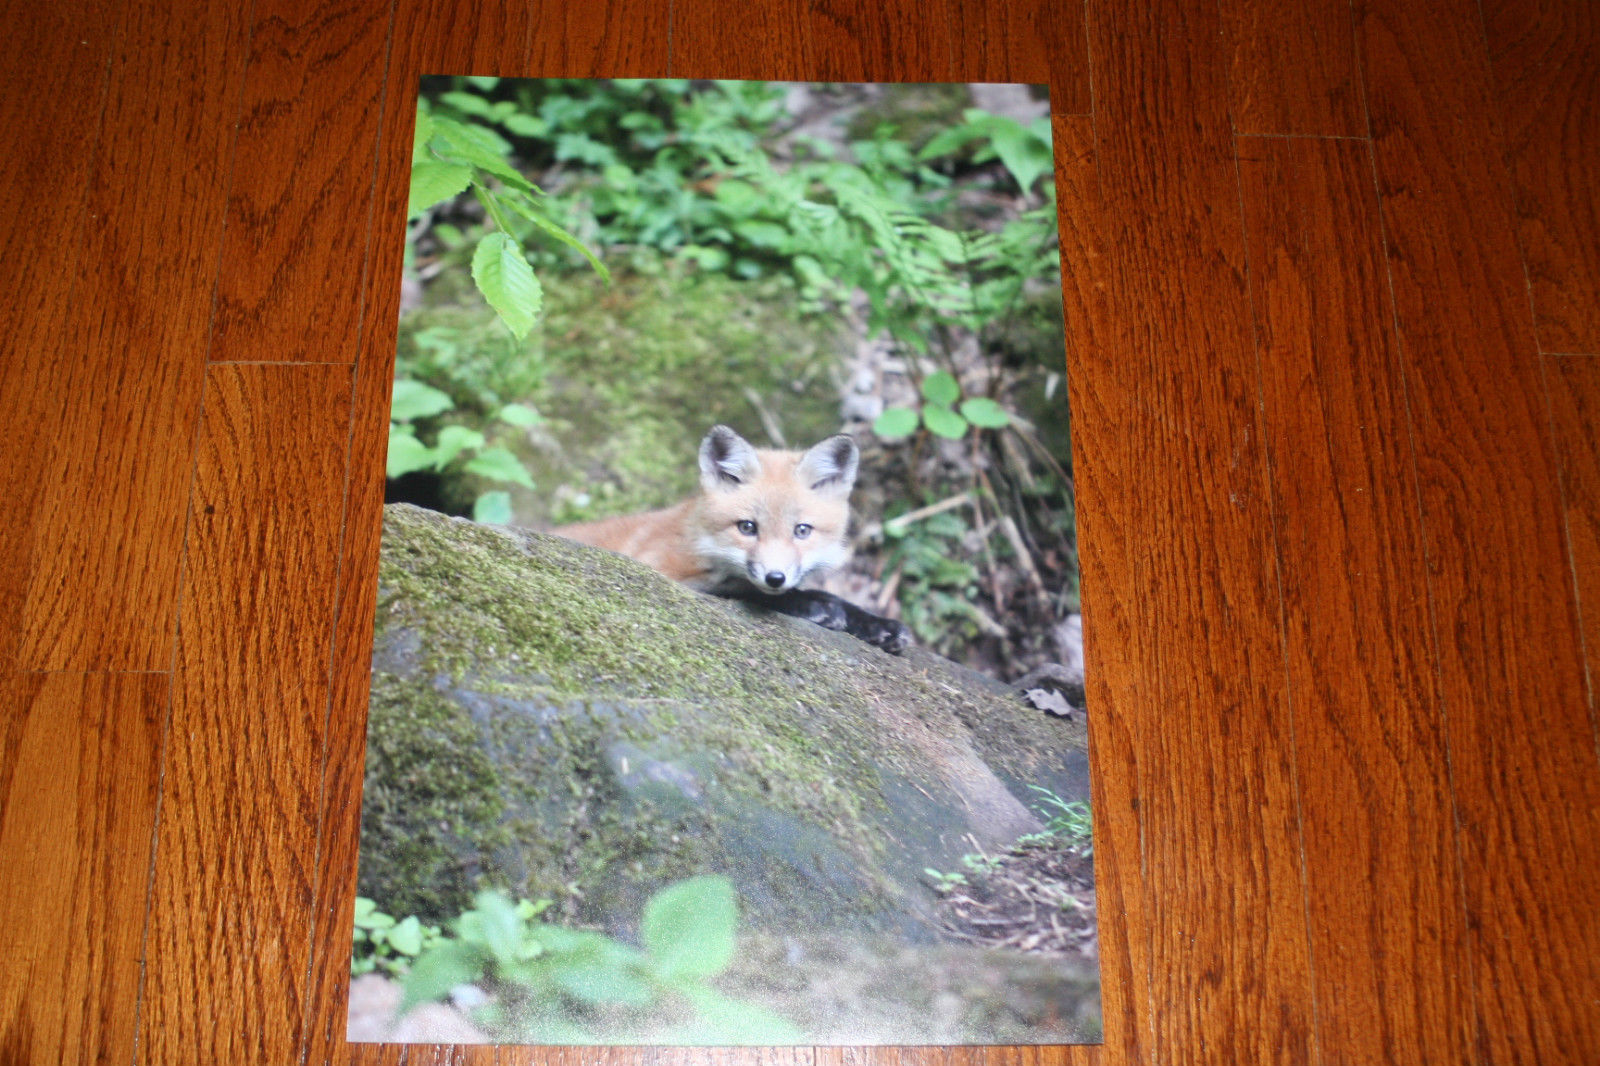 RED FOX PUP PHOTO PHOTOGRAPH 10 x 15